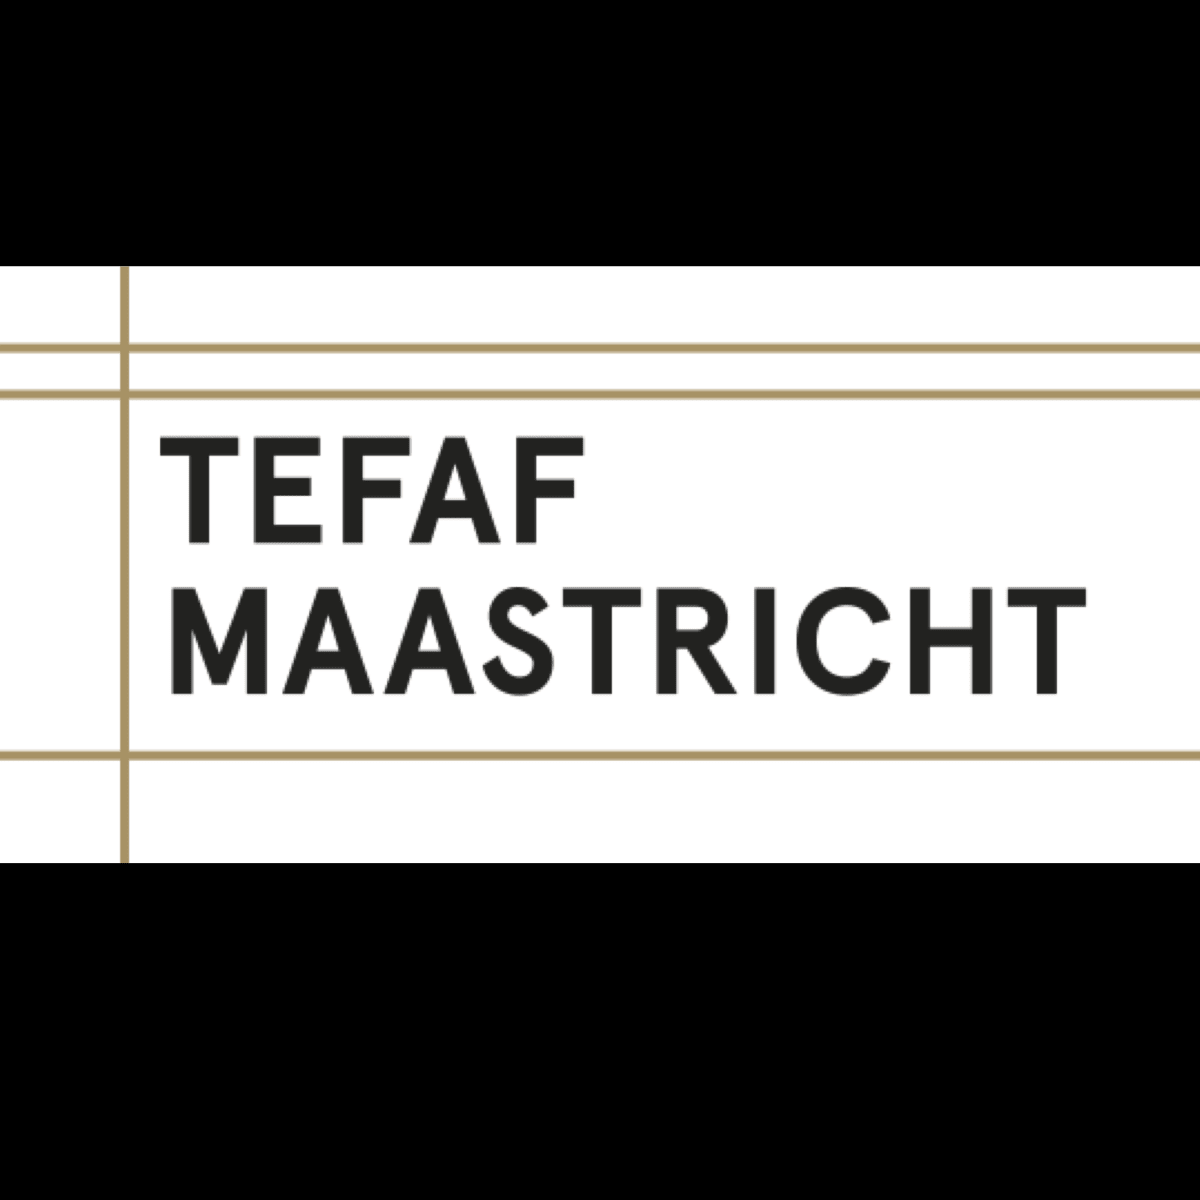 View our stand at TEFAF Maastricht 2020